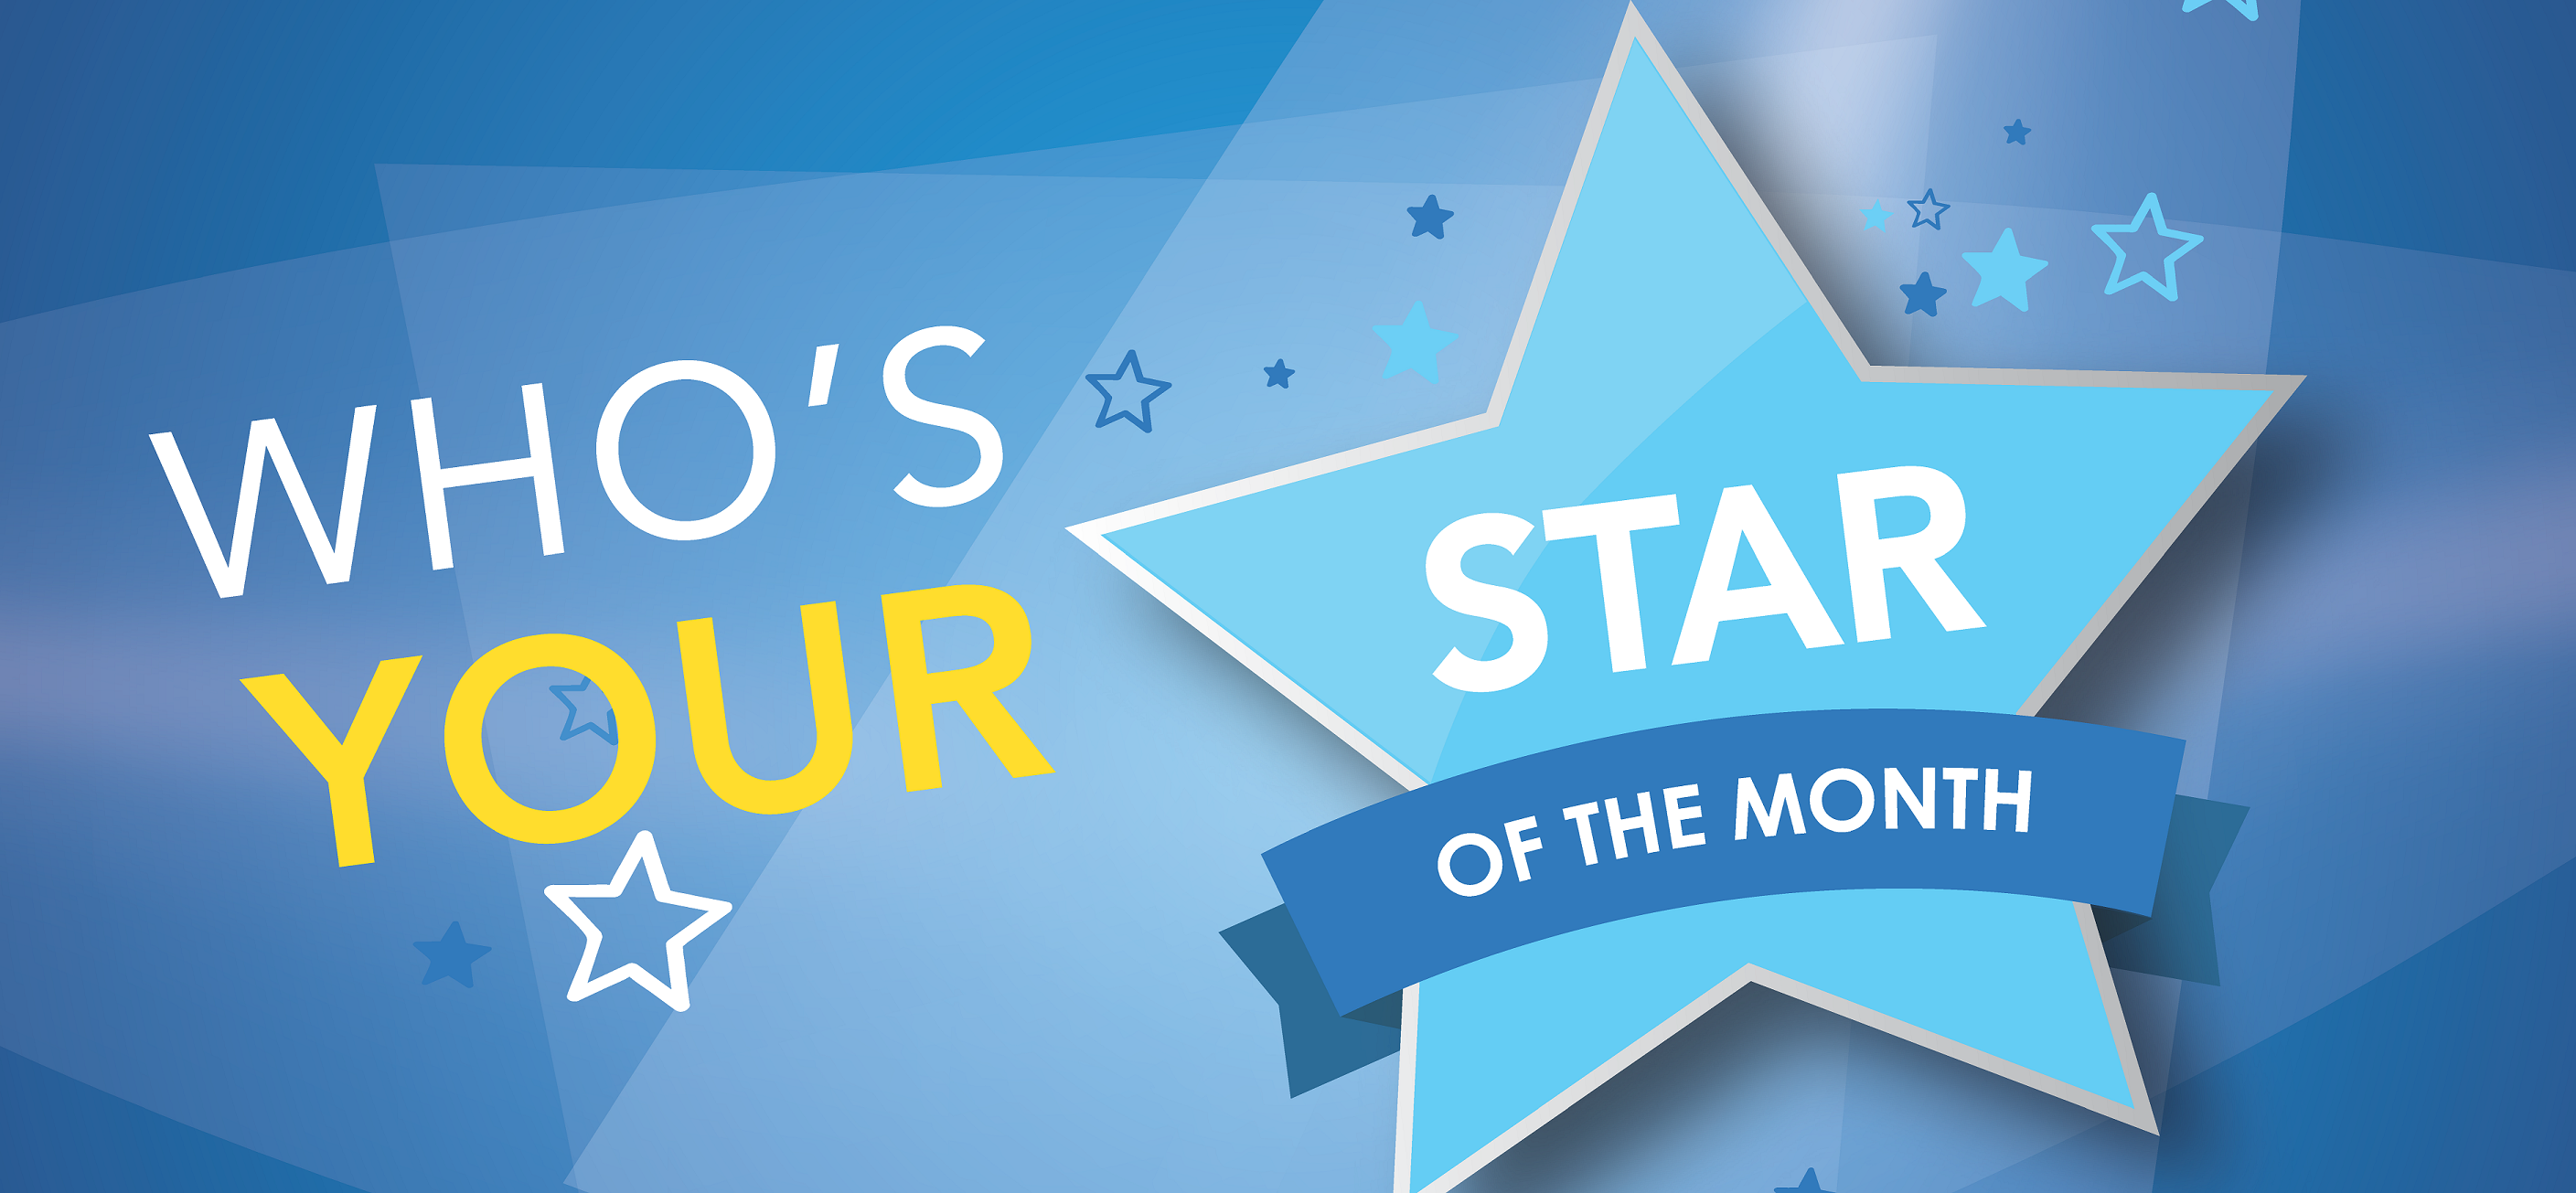 Who's your star of the month?